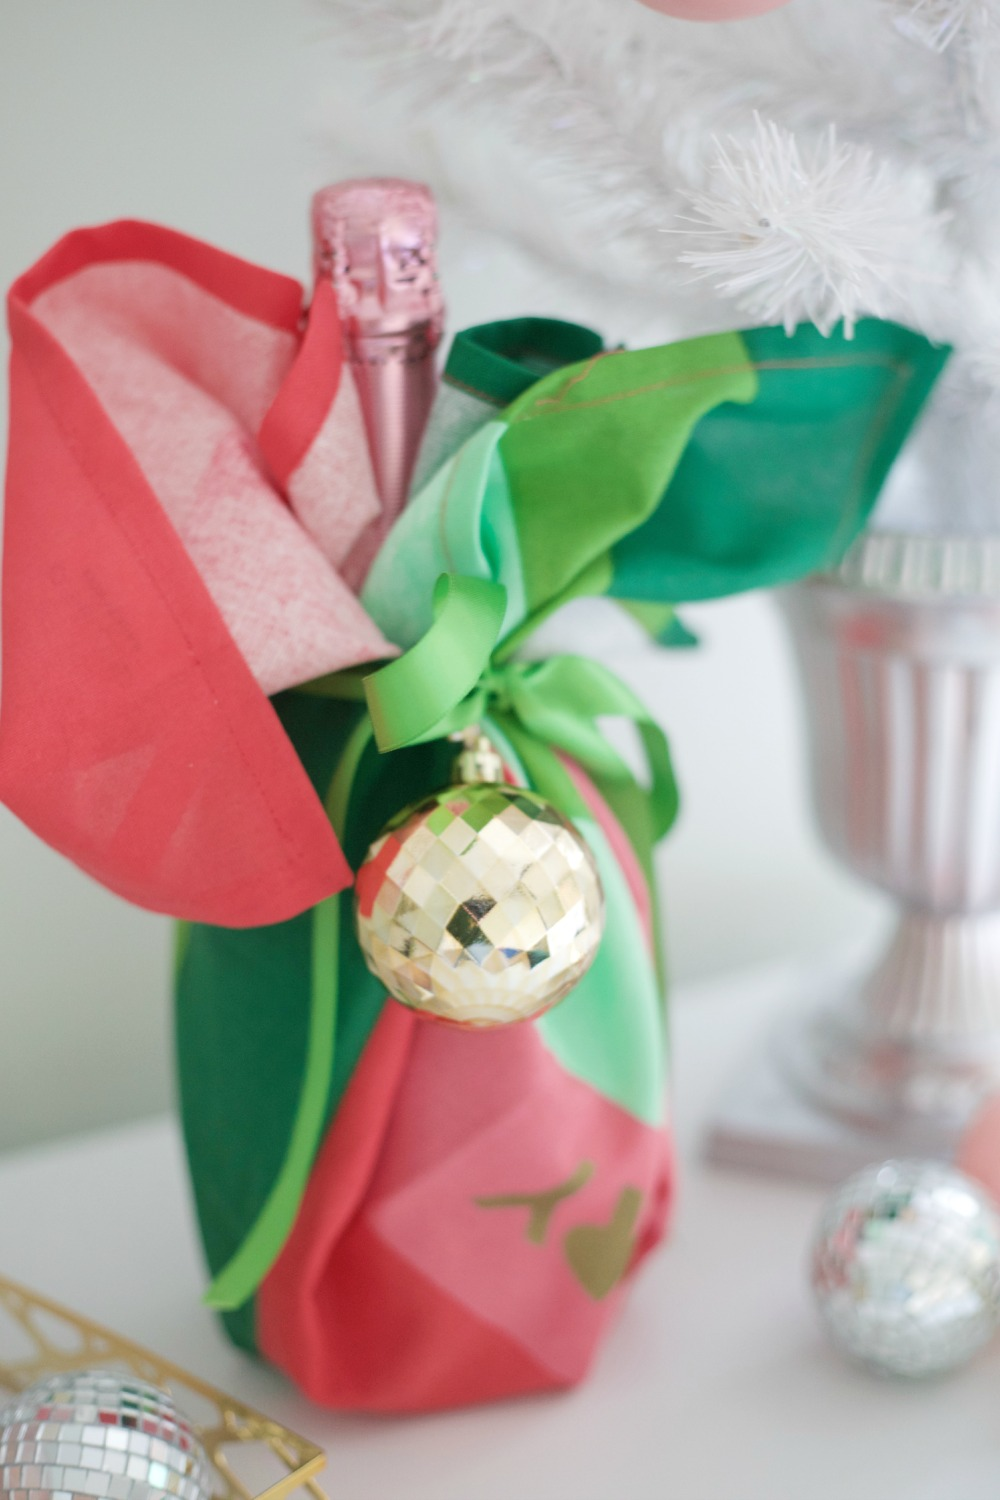 Easy Hostess Gift Idea for the Holidays by PartiesforPennies.com | Wine gift, Christmas present, Gift Idea